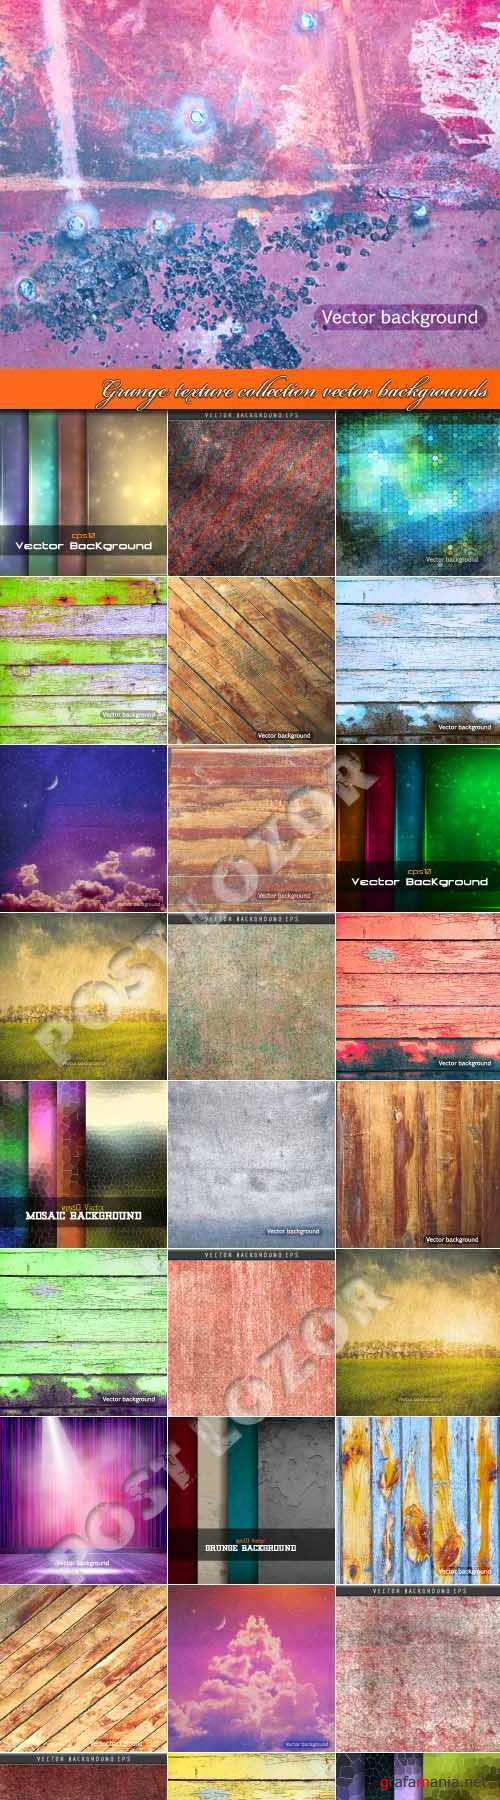 Гранж текстуры | Grunge texture collection vector backgrounds